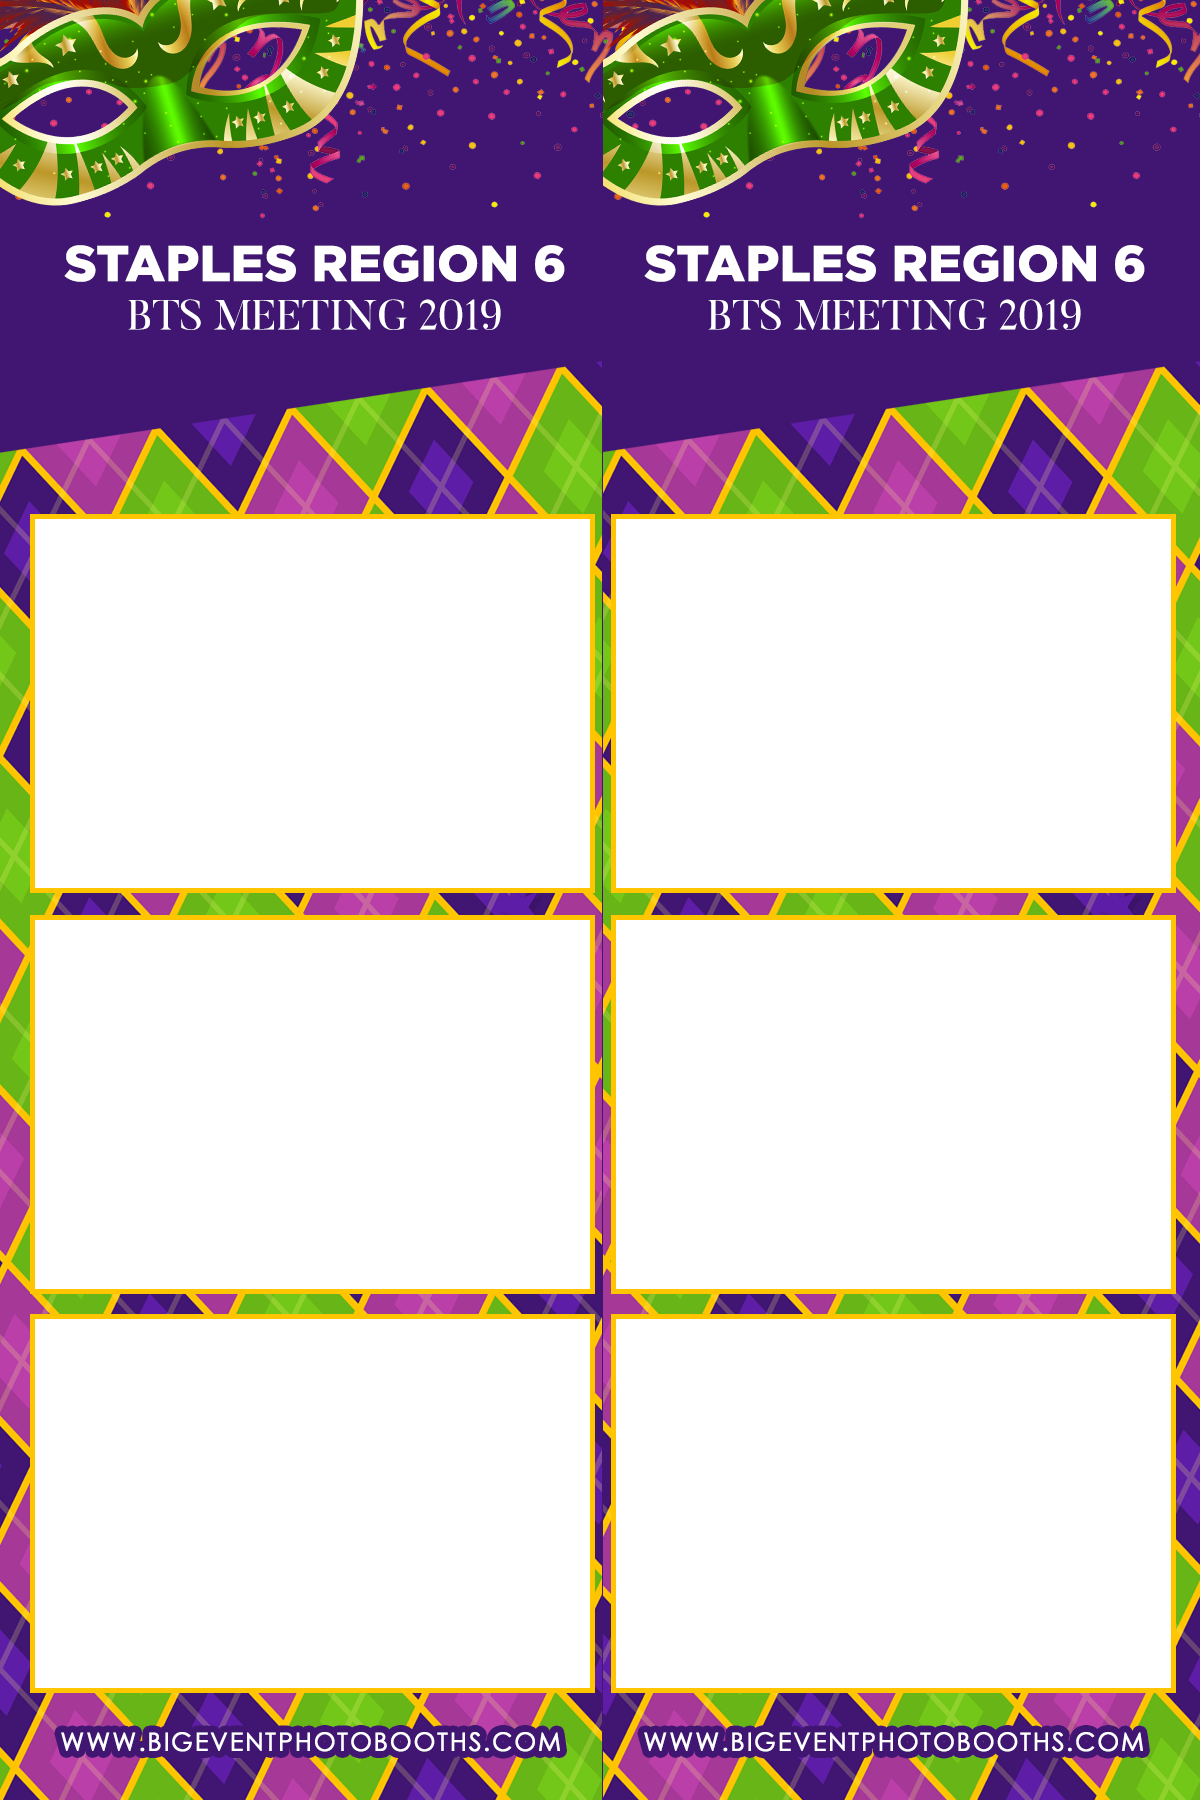 Not a Mirror Booth Big Event Photo Booths Call and schedule your